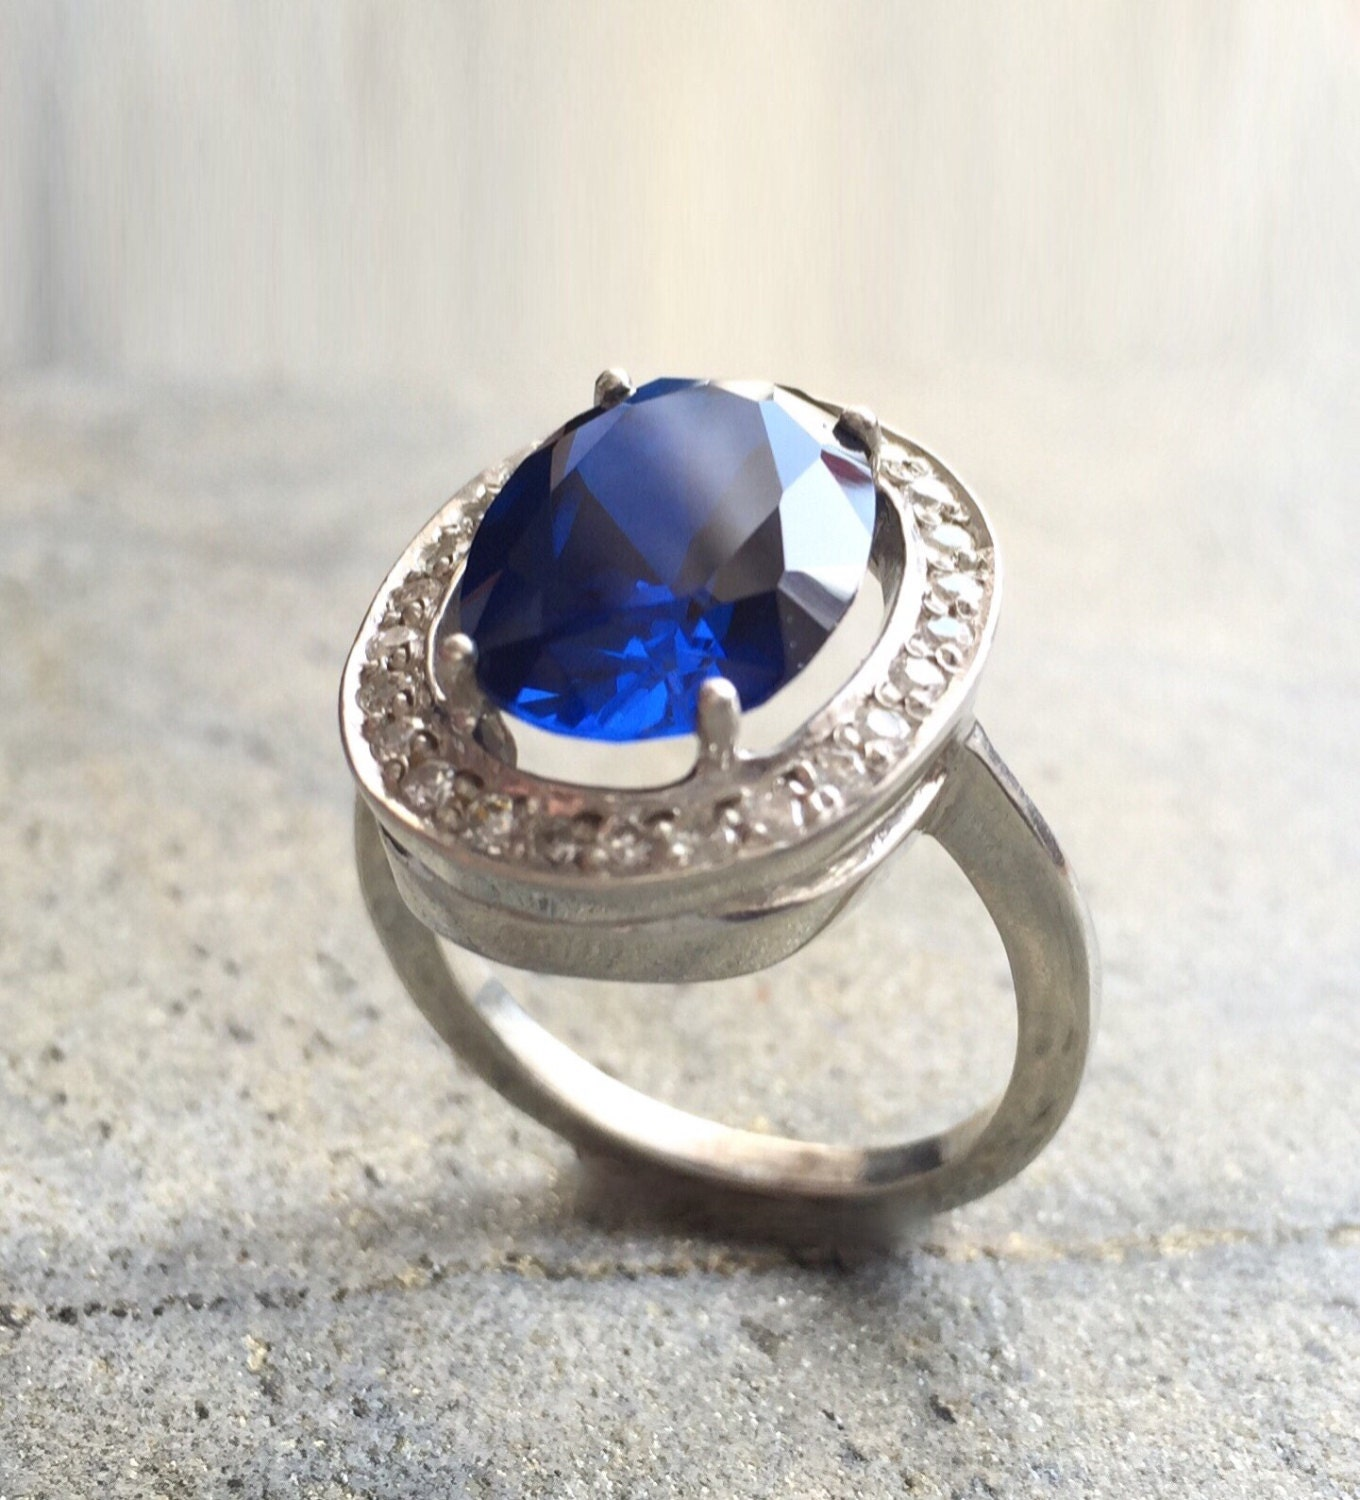 in rings sapphire sterling with jewelry ring jewellery created silver diamonds ct